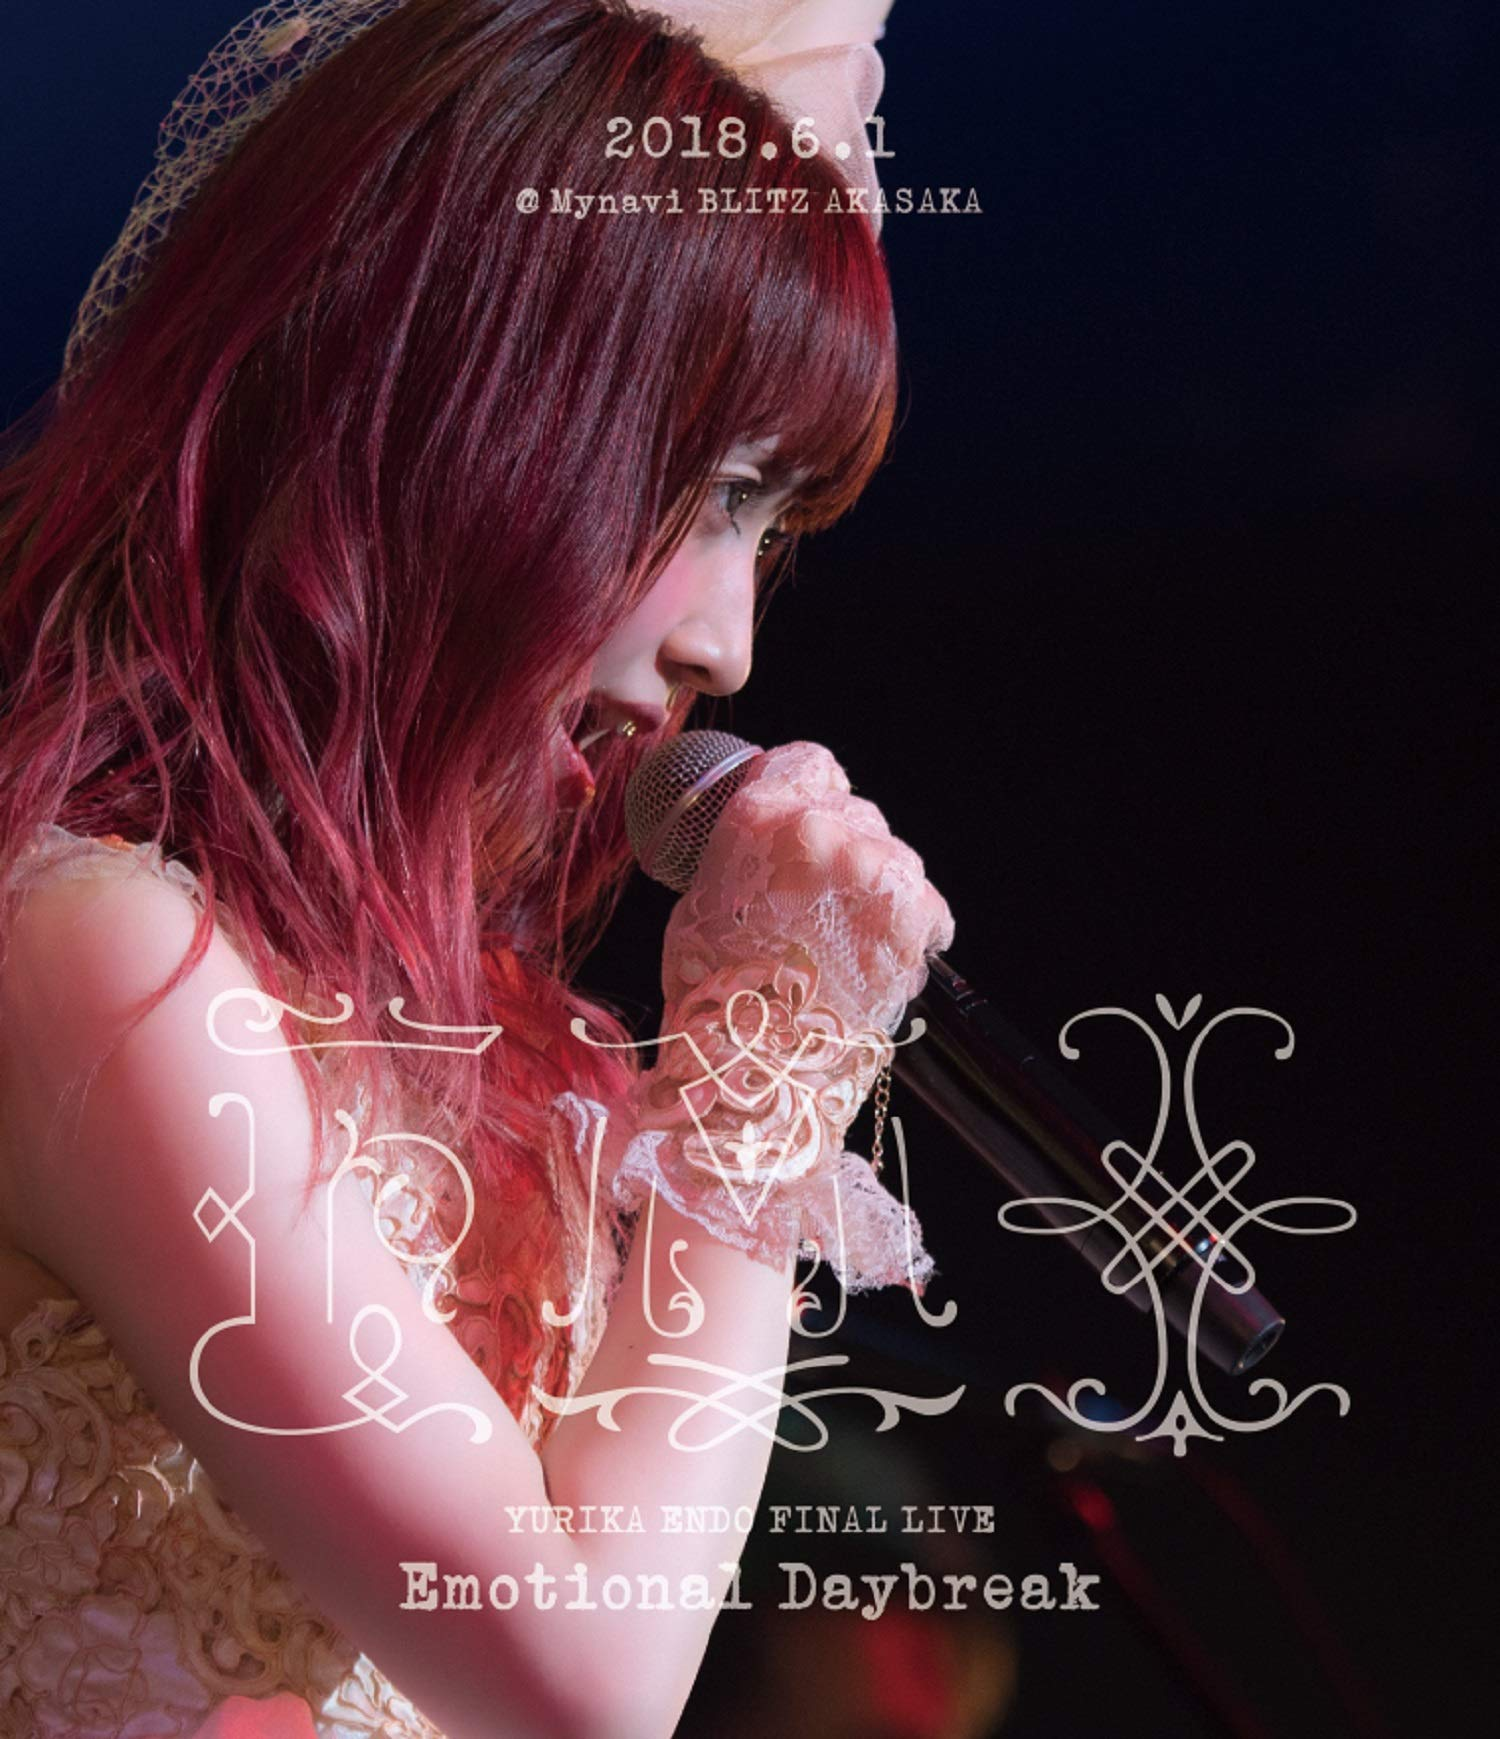 遠藤ゆりか FINAL LIVE -Emotional Daybreak- [Blu-ray]